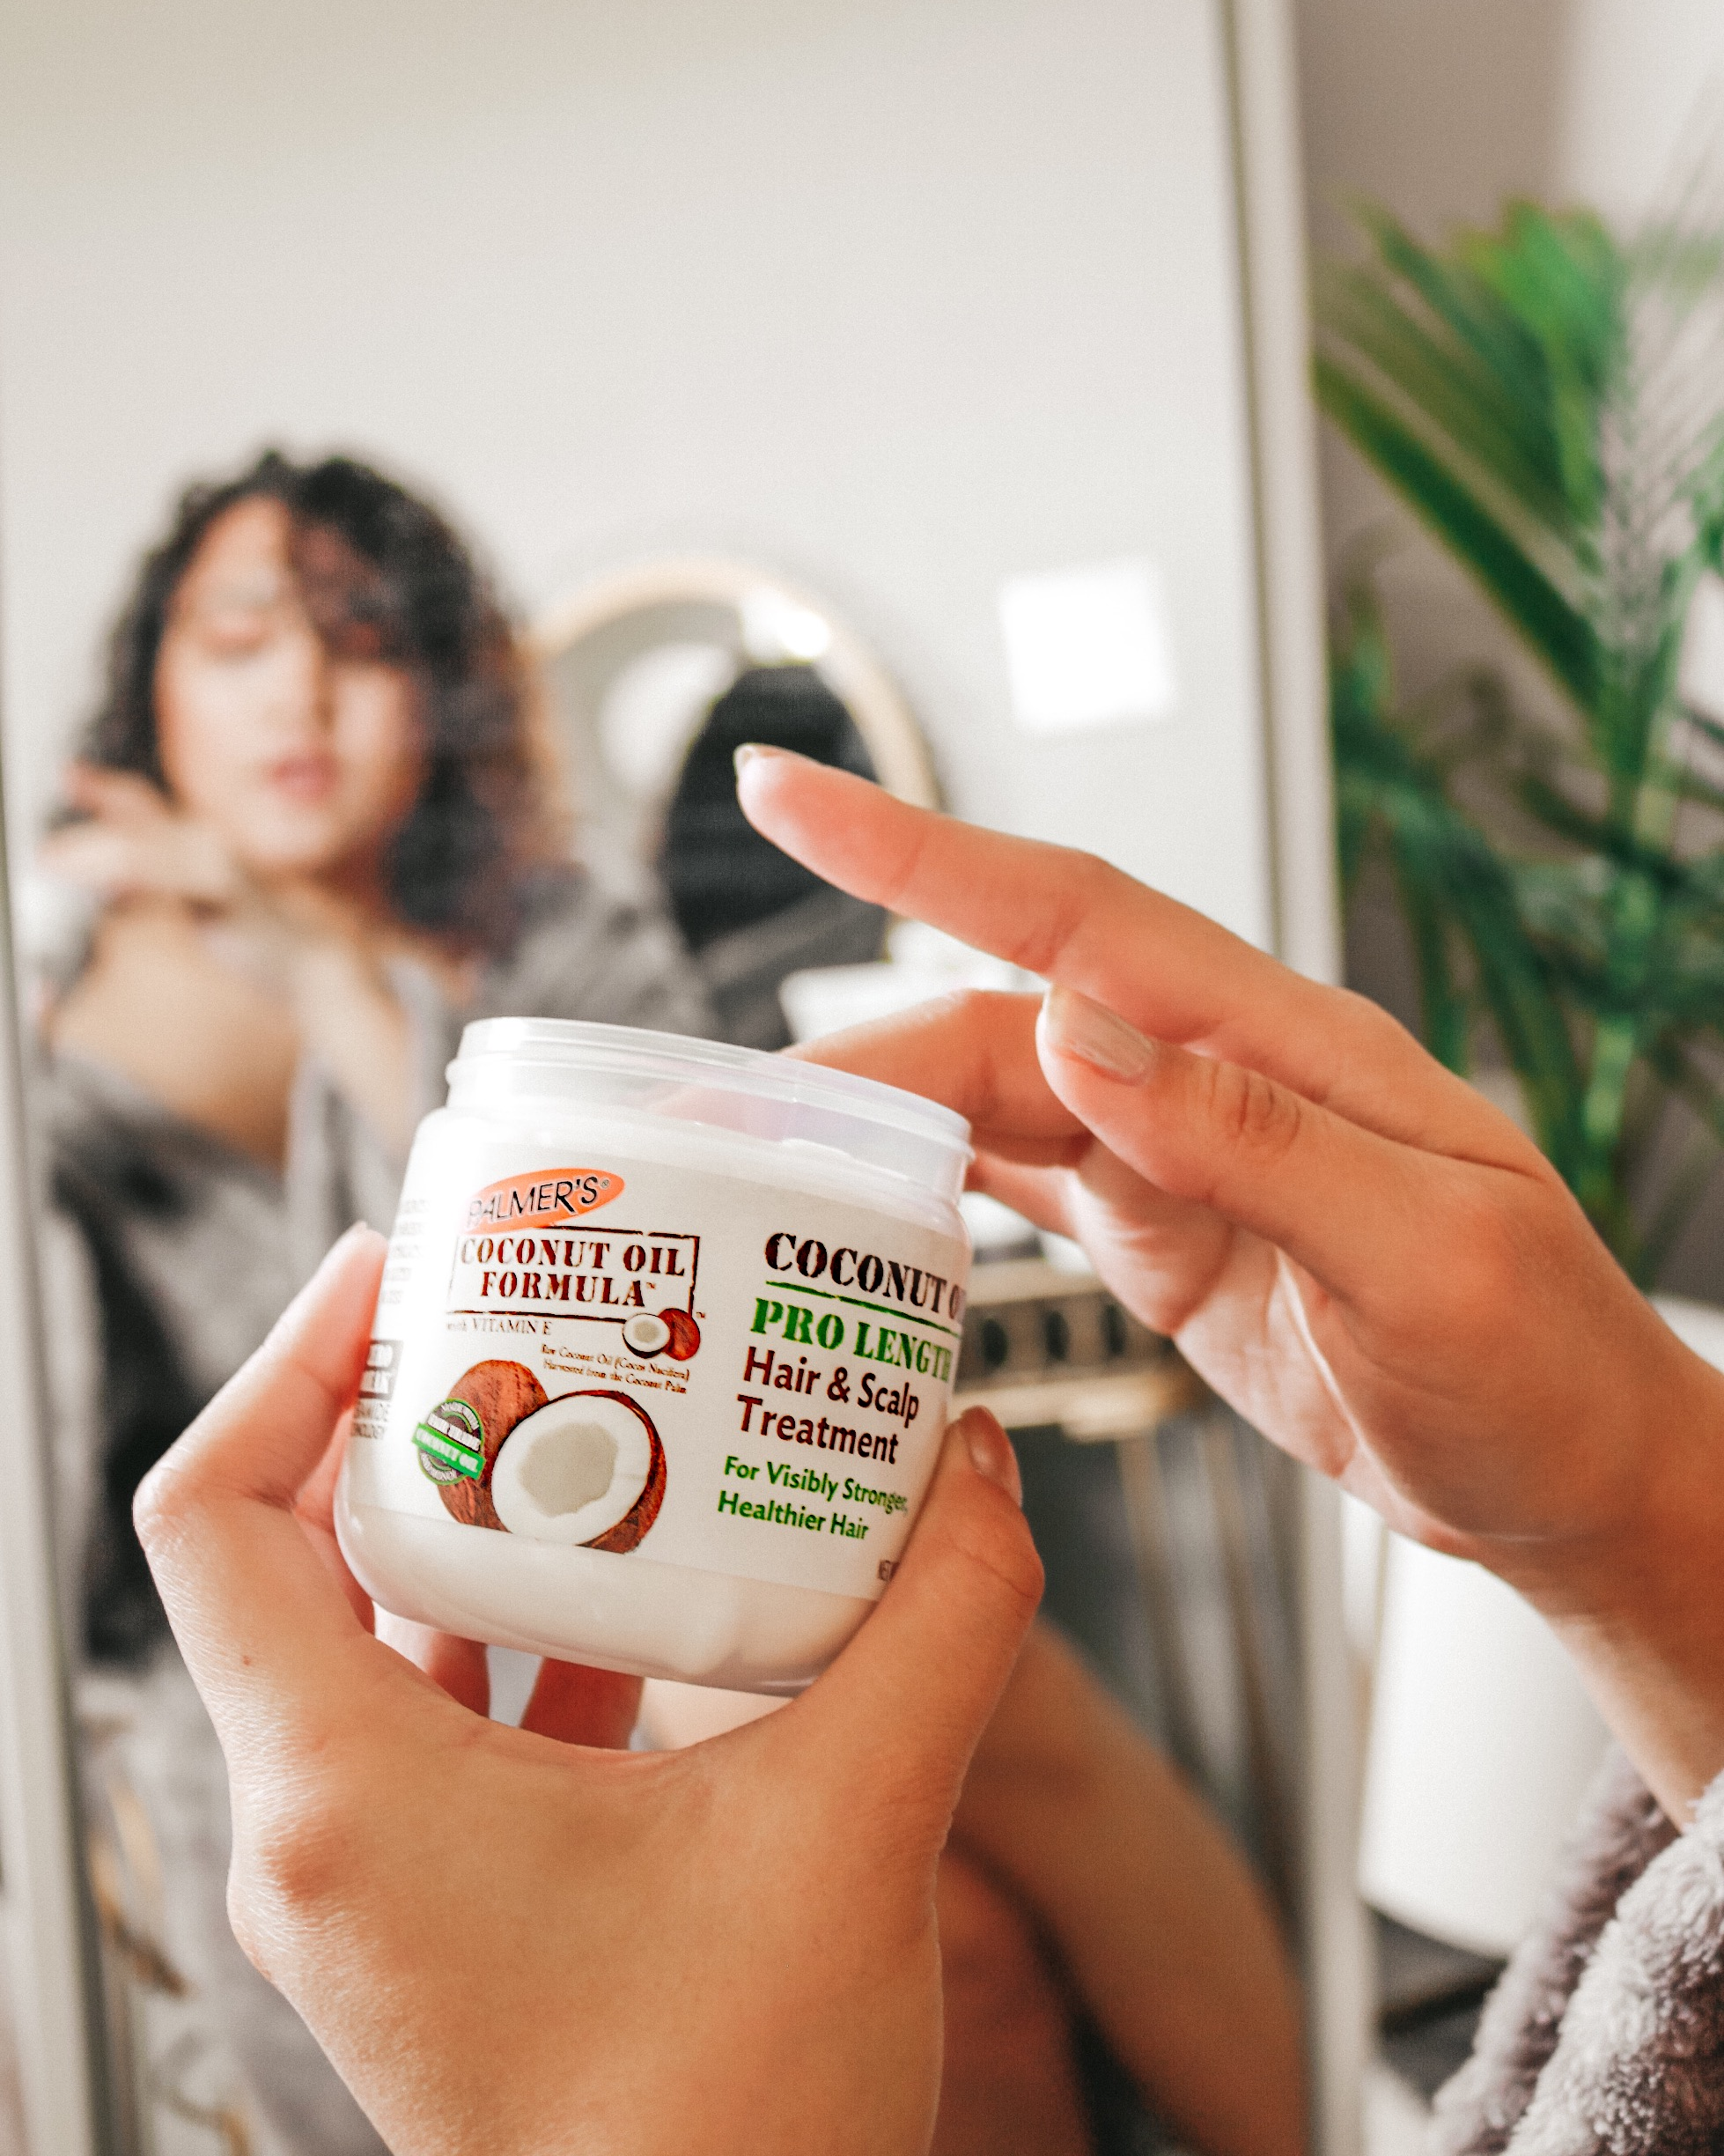 Palmer's Coconut Oil Formula Pro Length Treatment for damaged hair being applied